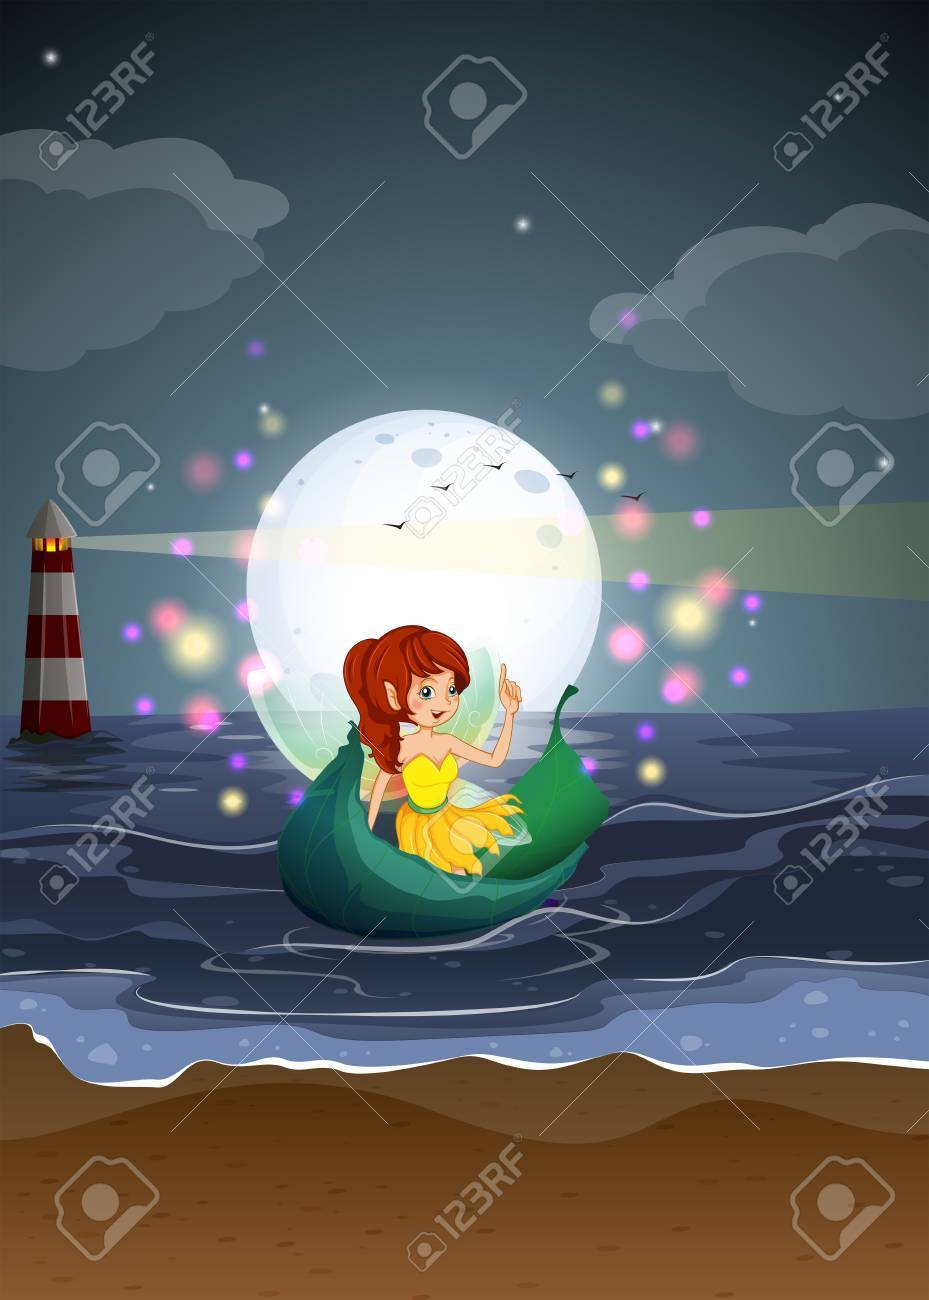 lllustration of a fairy riding on a boat at the beach Stock Vector - 20889292